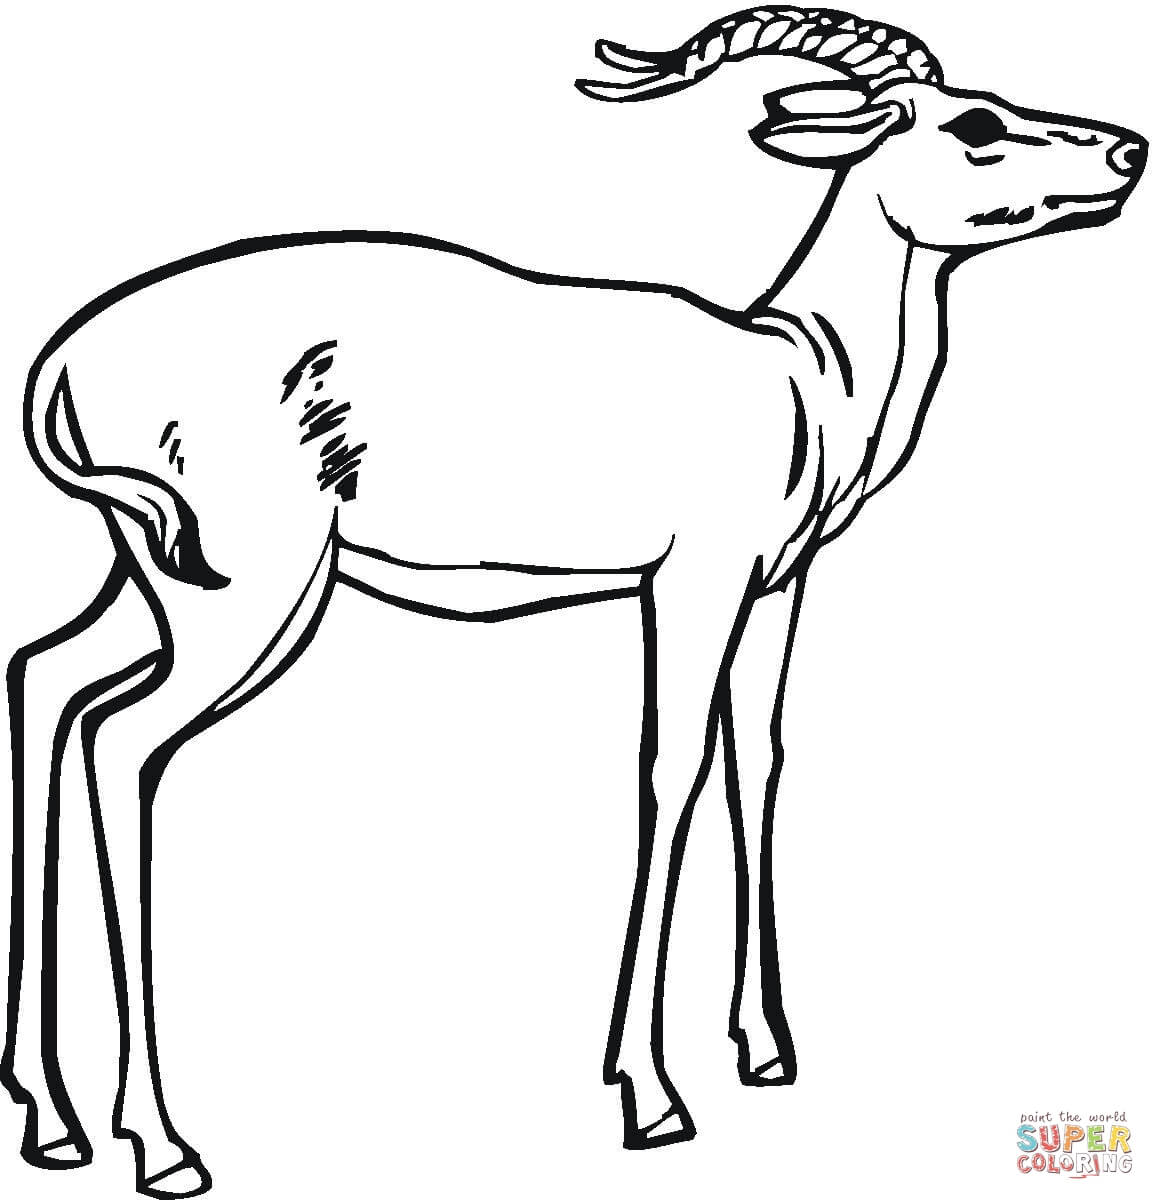 free-animals-antelope-printable-coloring-pages-for-kids